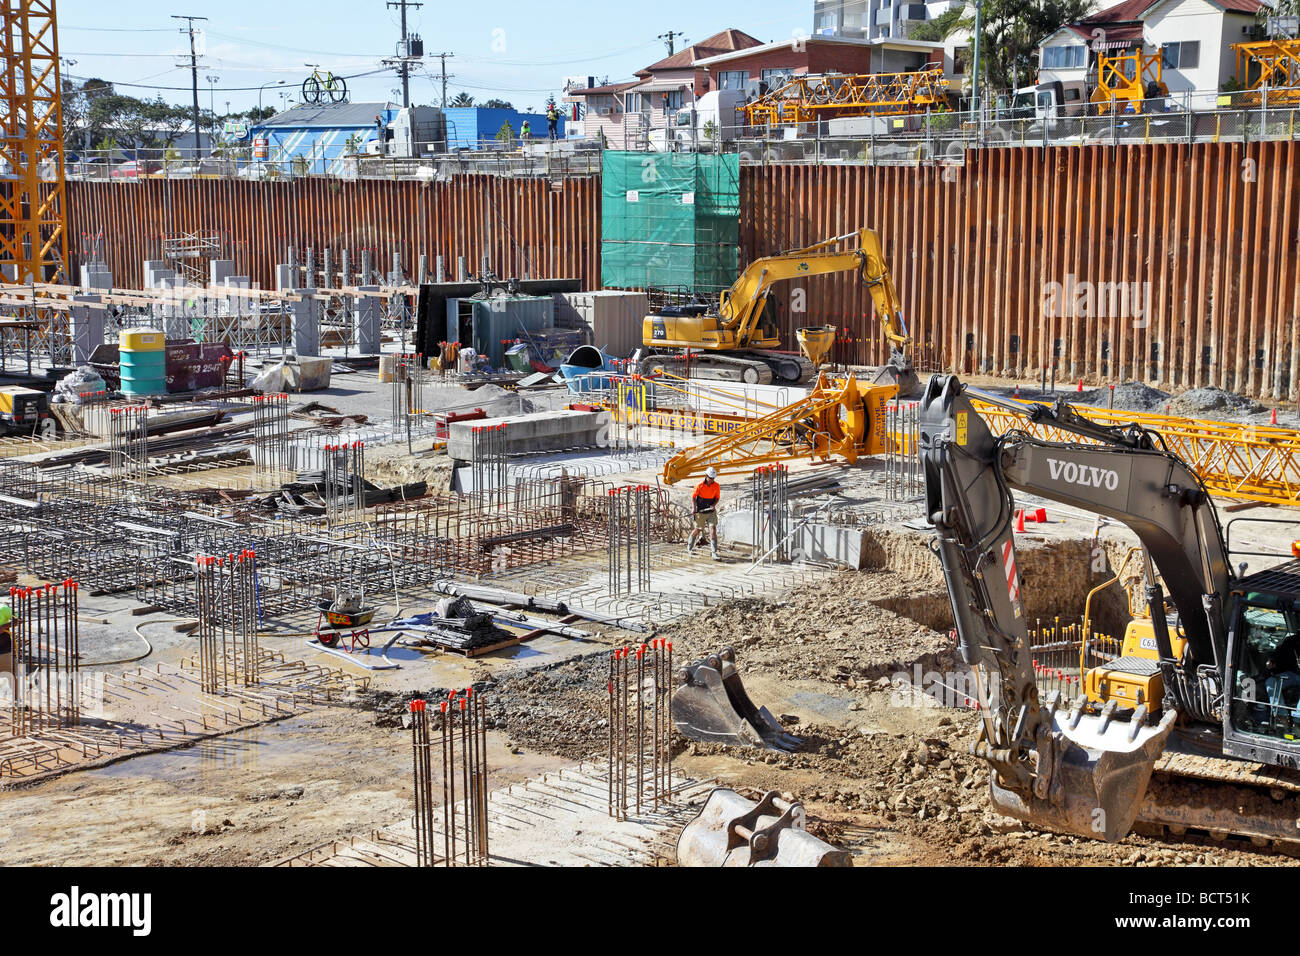 Constructing the concrete and steel foundations for a highrise building - Stock Image